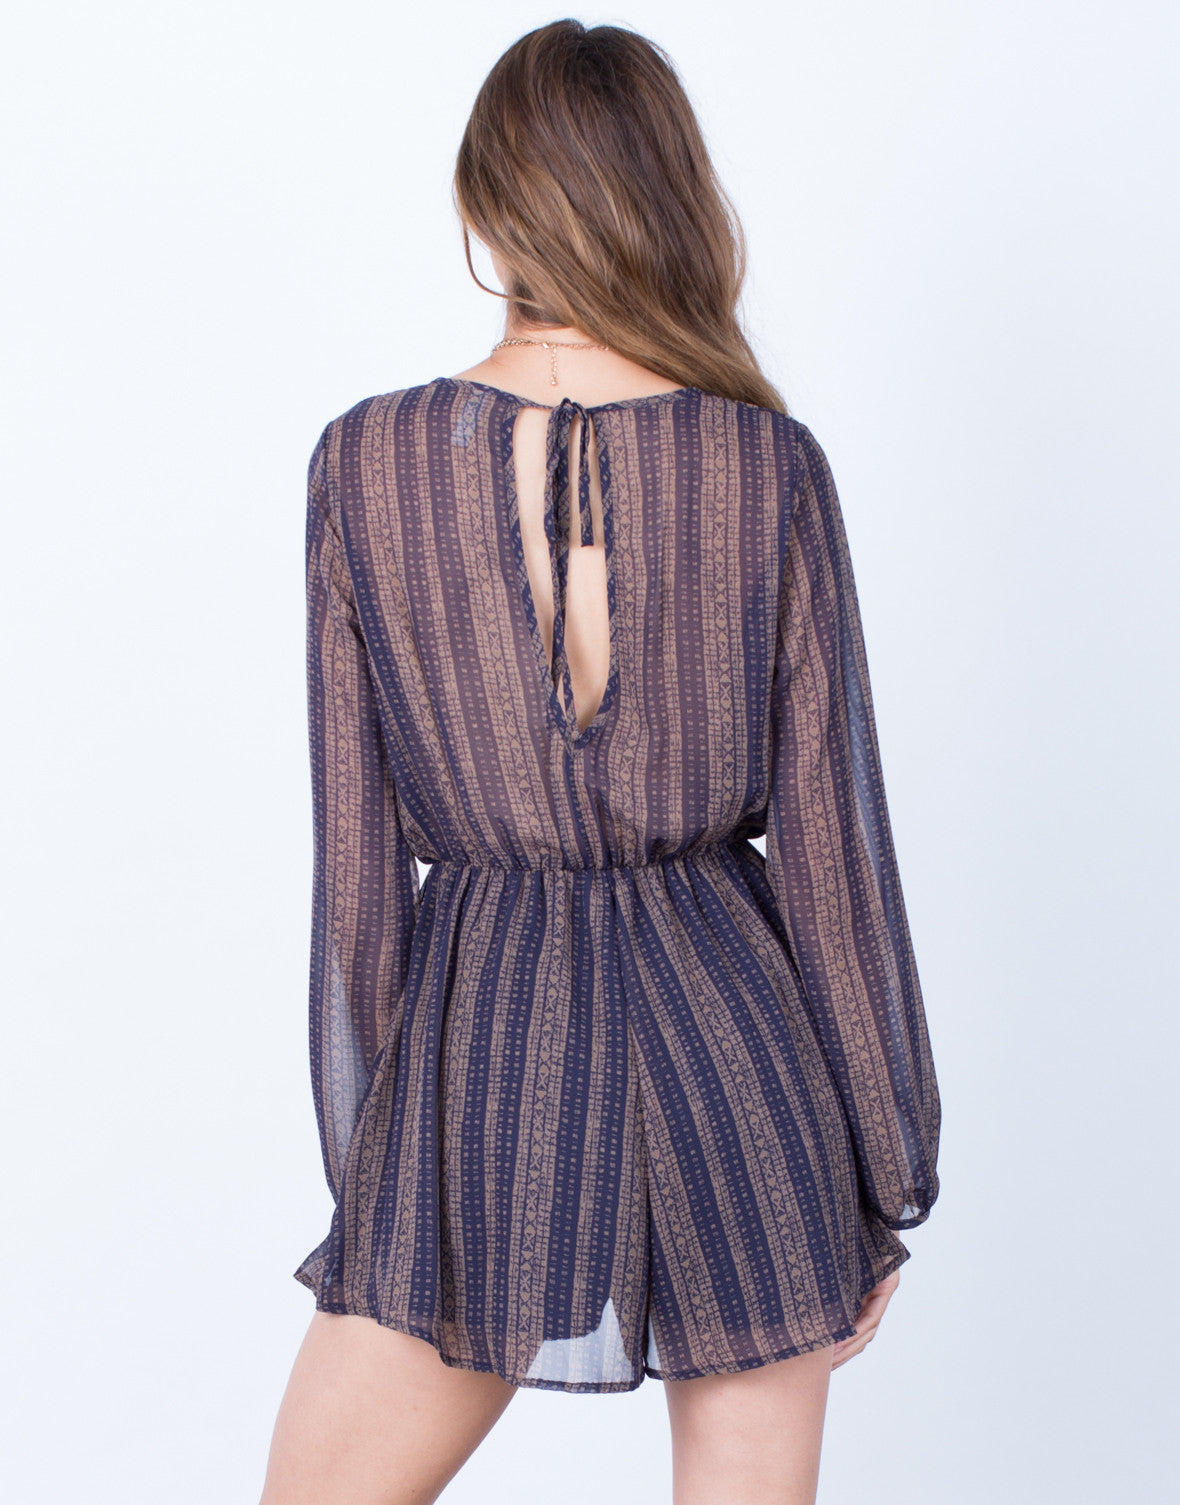 Back View of Aztec Printed Chiffon Romper